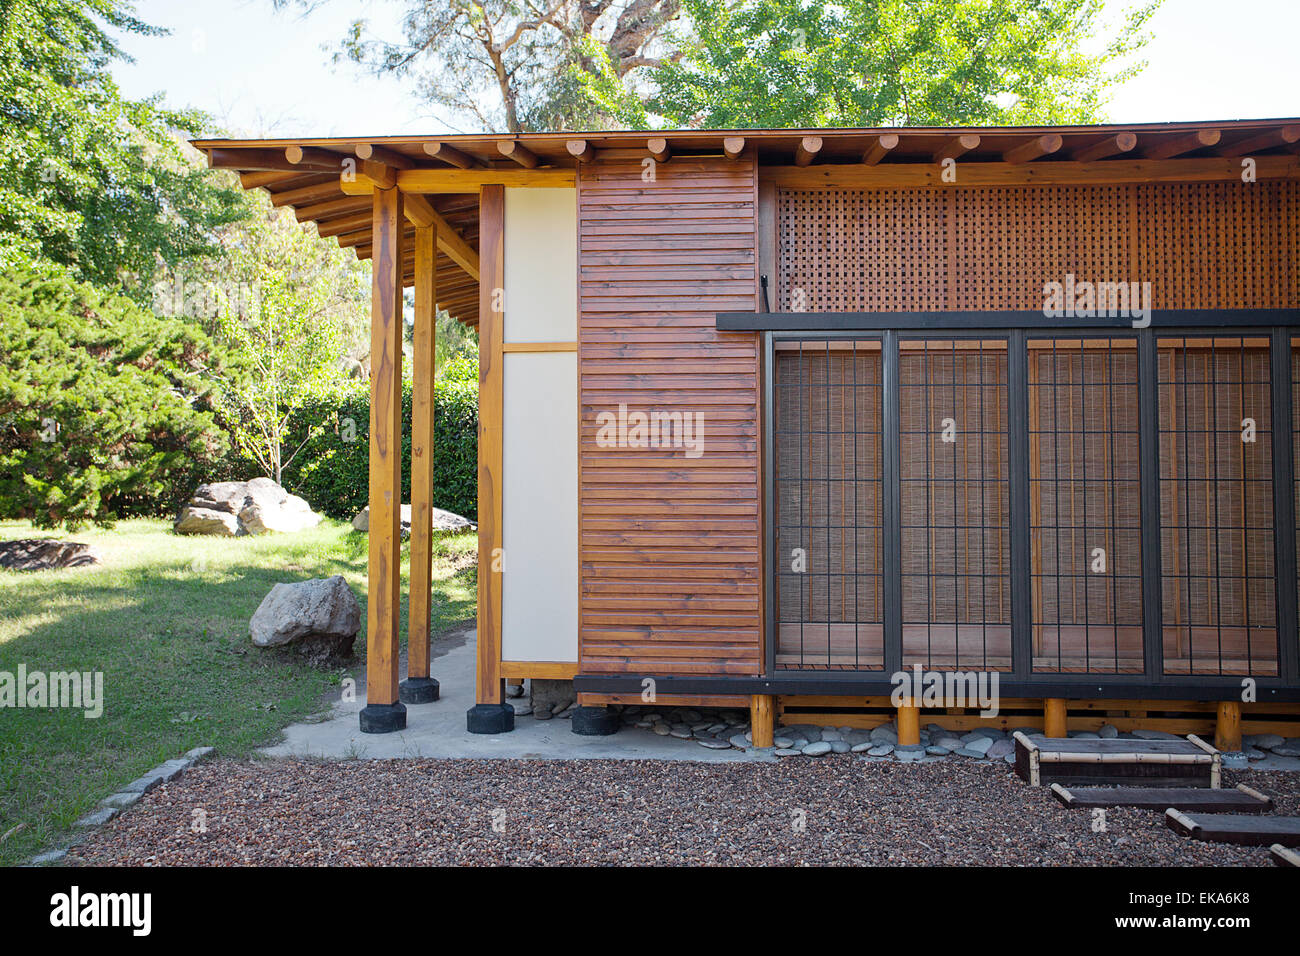 Small Wooden House In Japanese Style Stock Photo Alamy